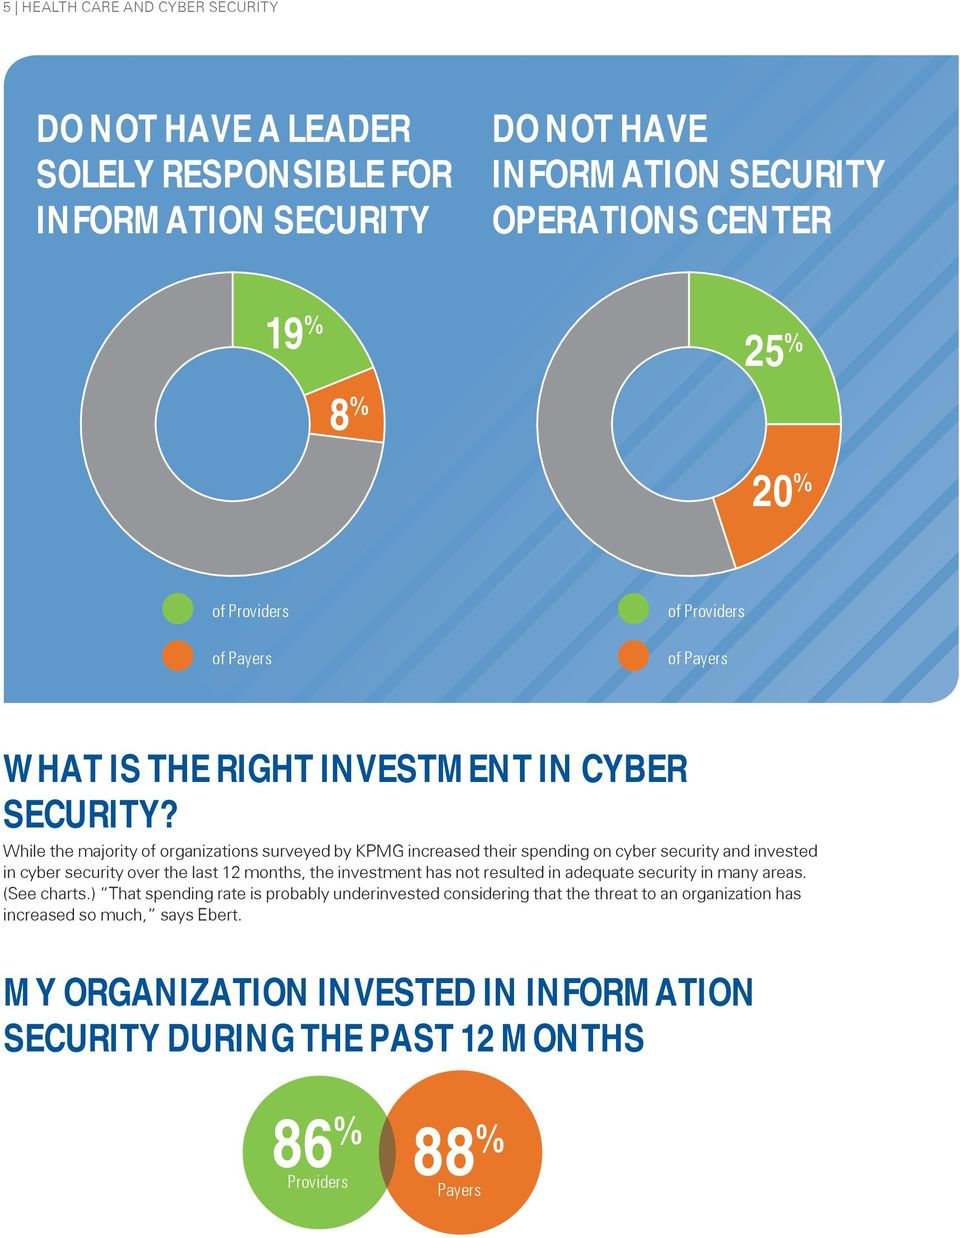 While the majority of organizations surveyed by KPMG increased their spending on cyber security and invested in cyber security over the last 12 months, the investment has not